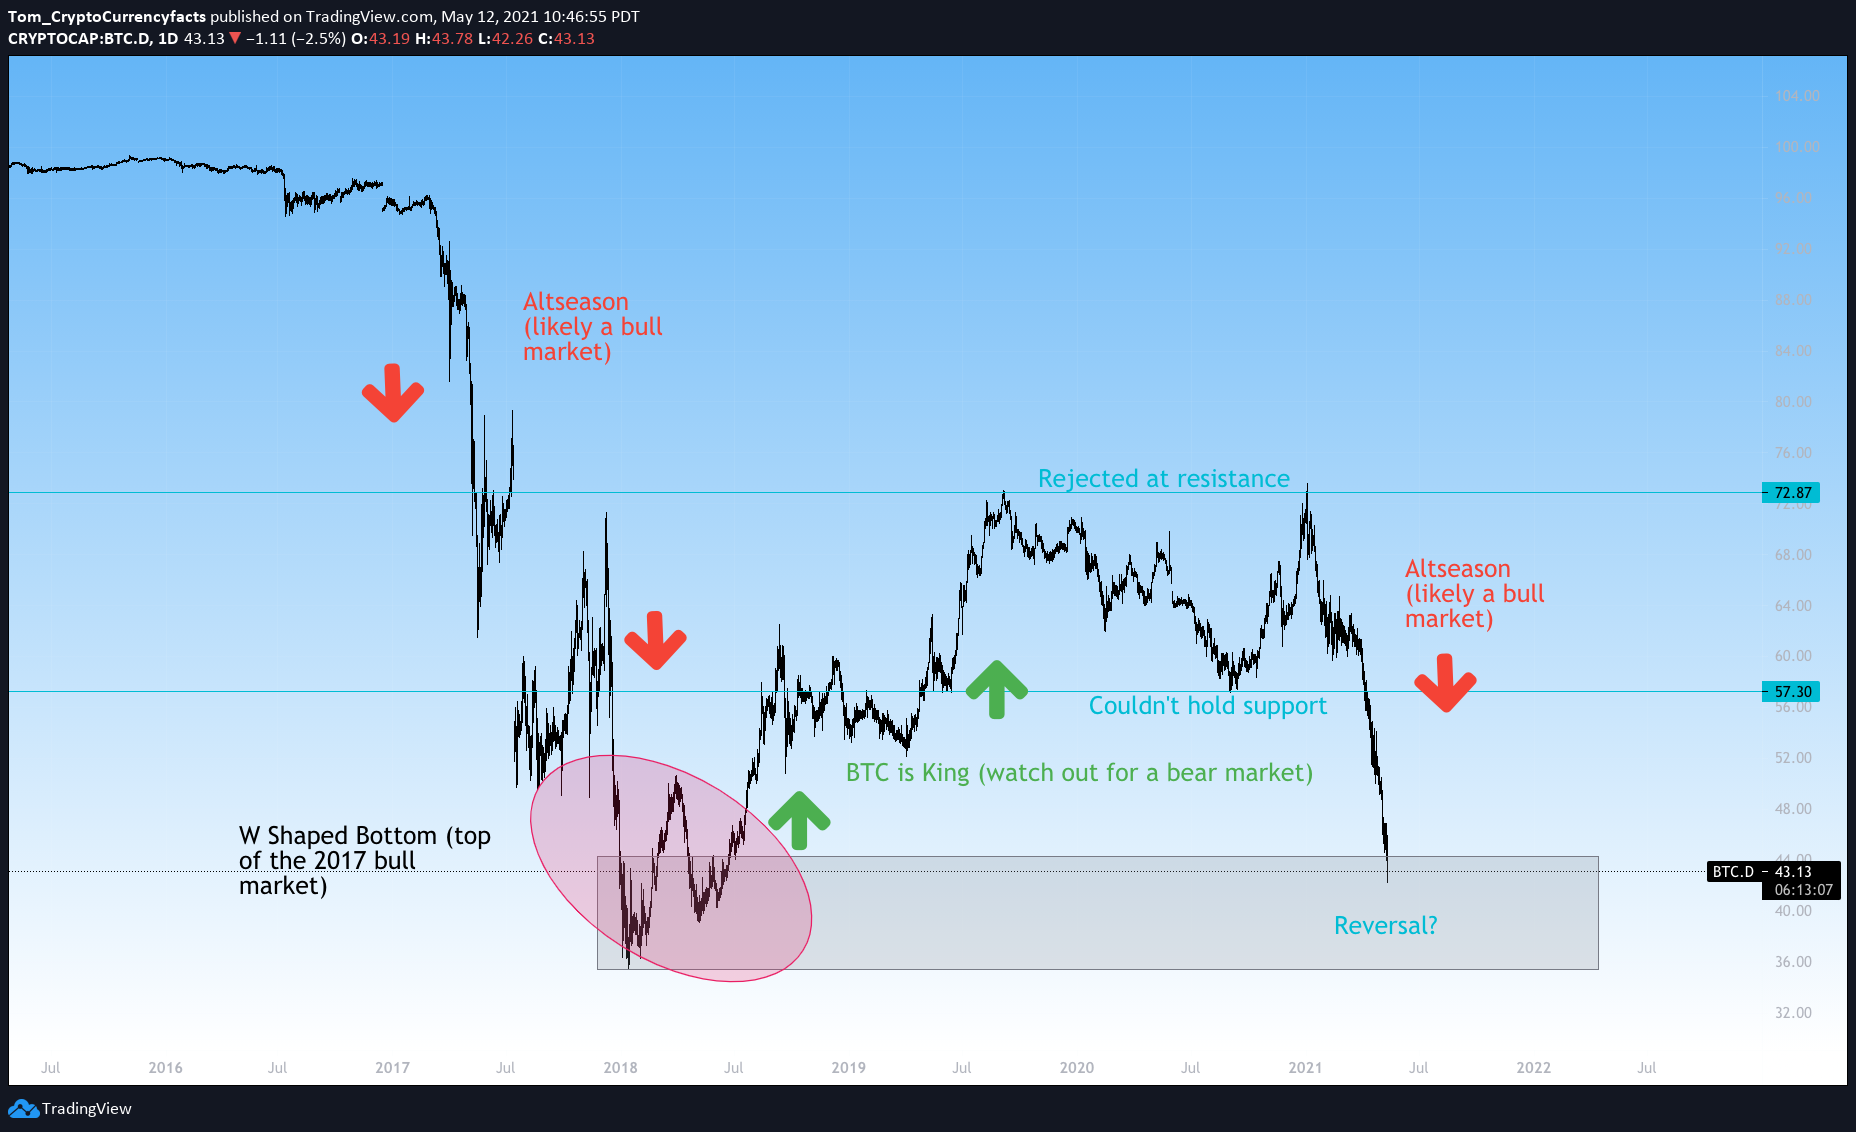 A chart showing Bitcoin dominance and market cycles.